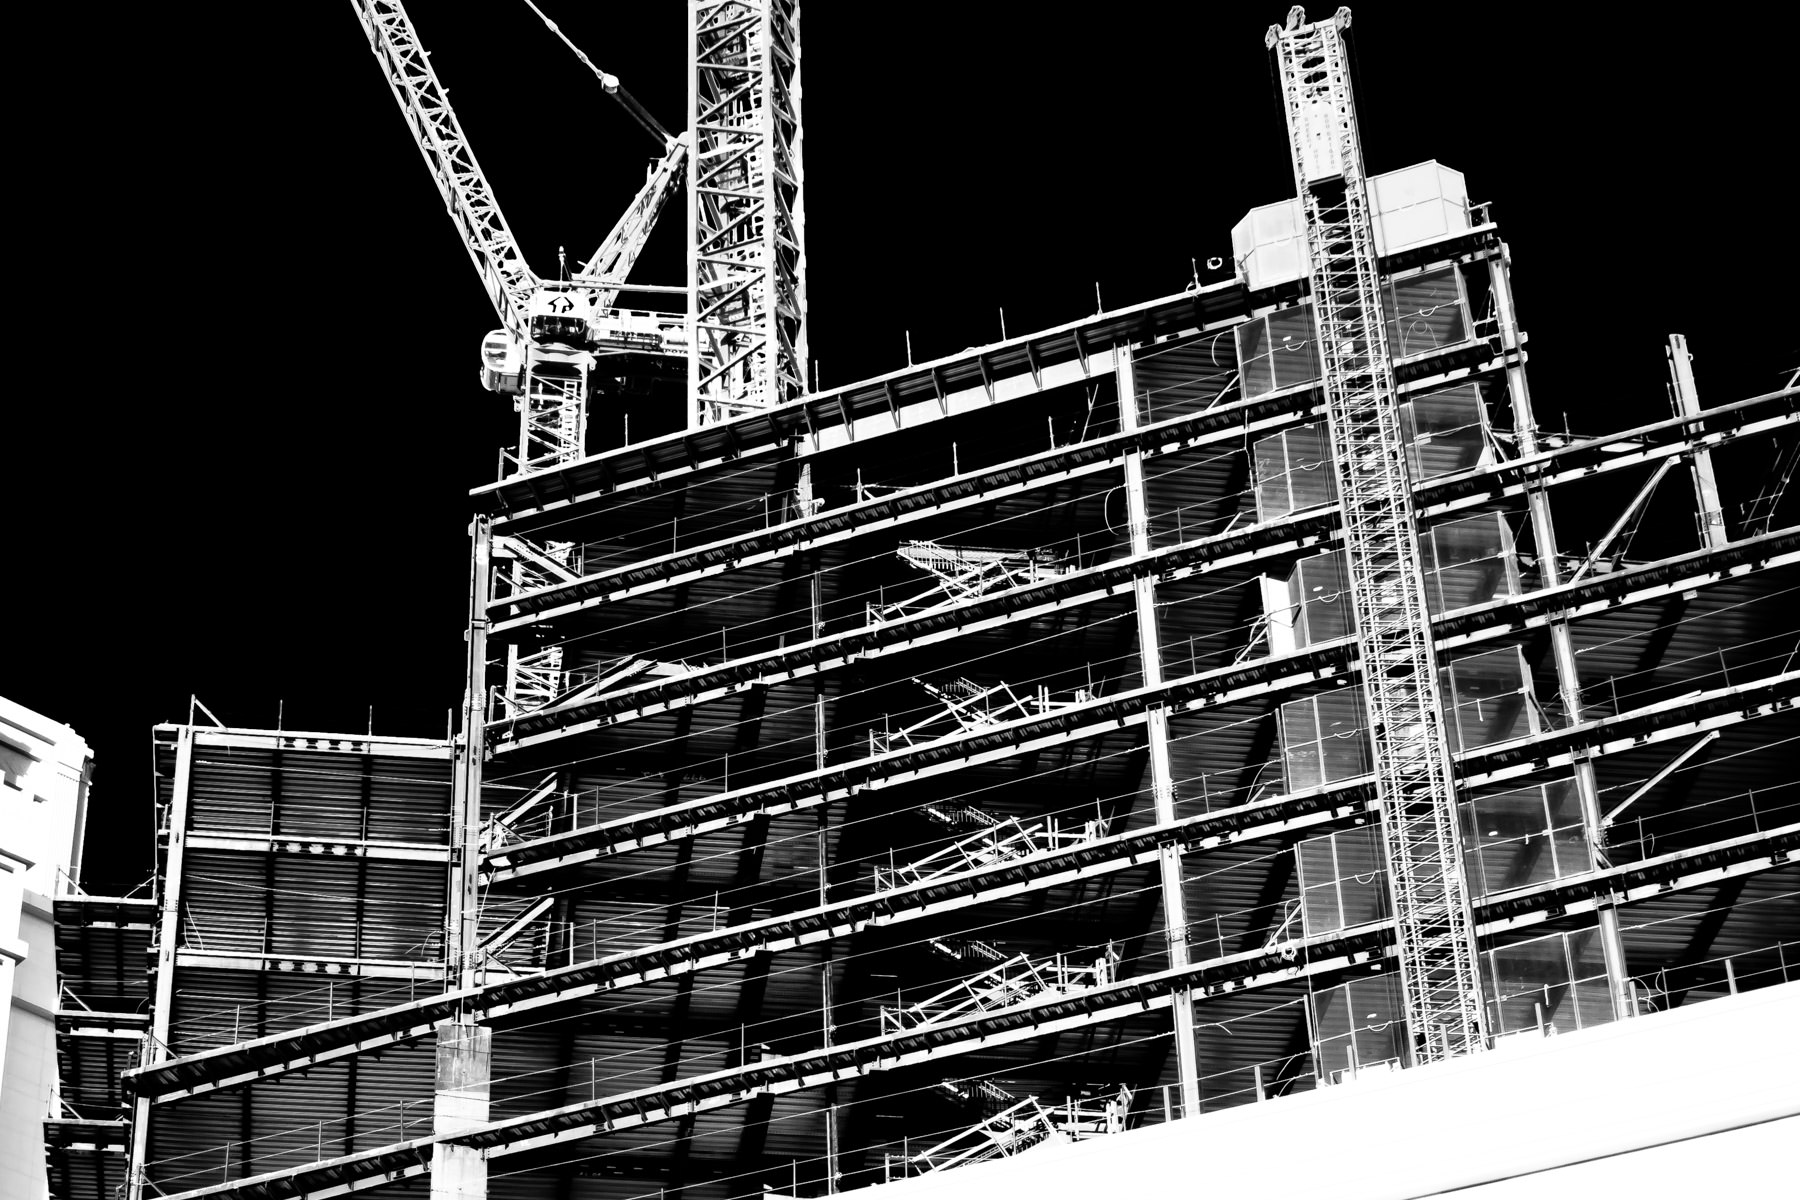 The construction site of the never-completed St. Regis Residences at The Venetian, Las Vegas.